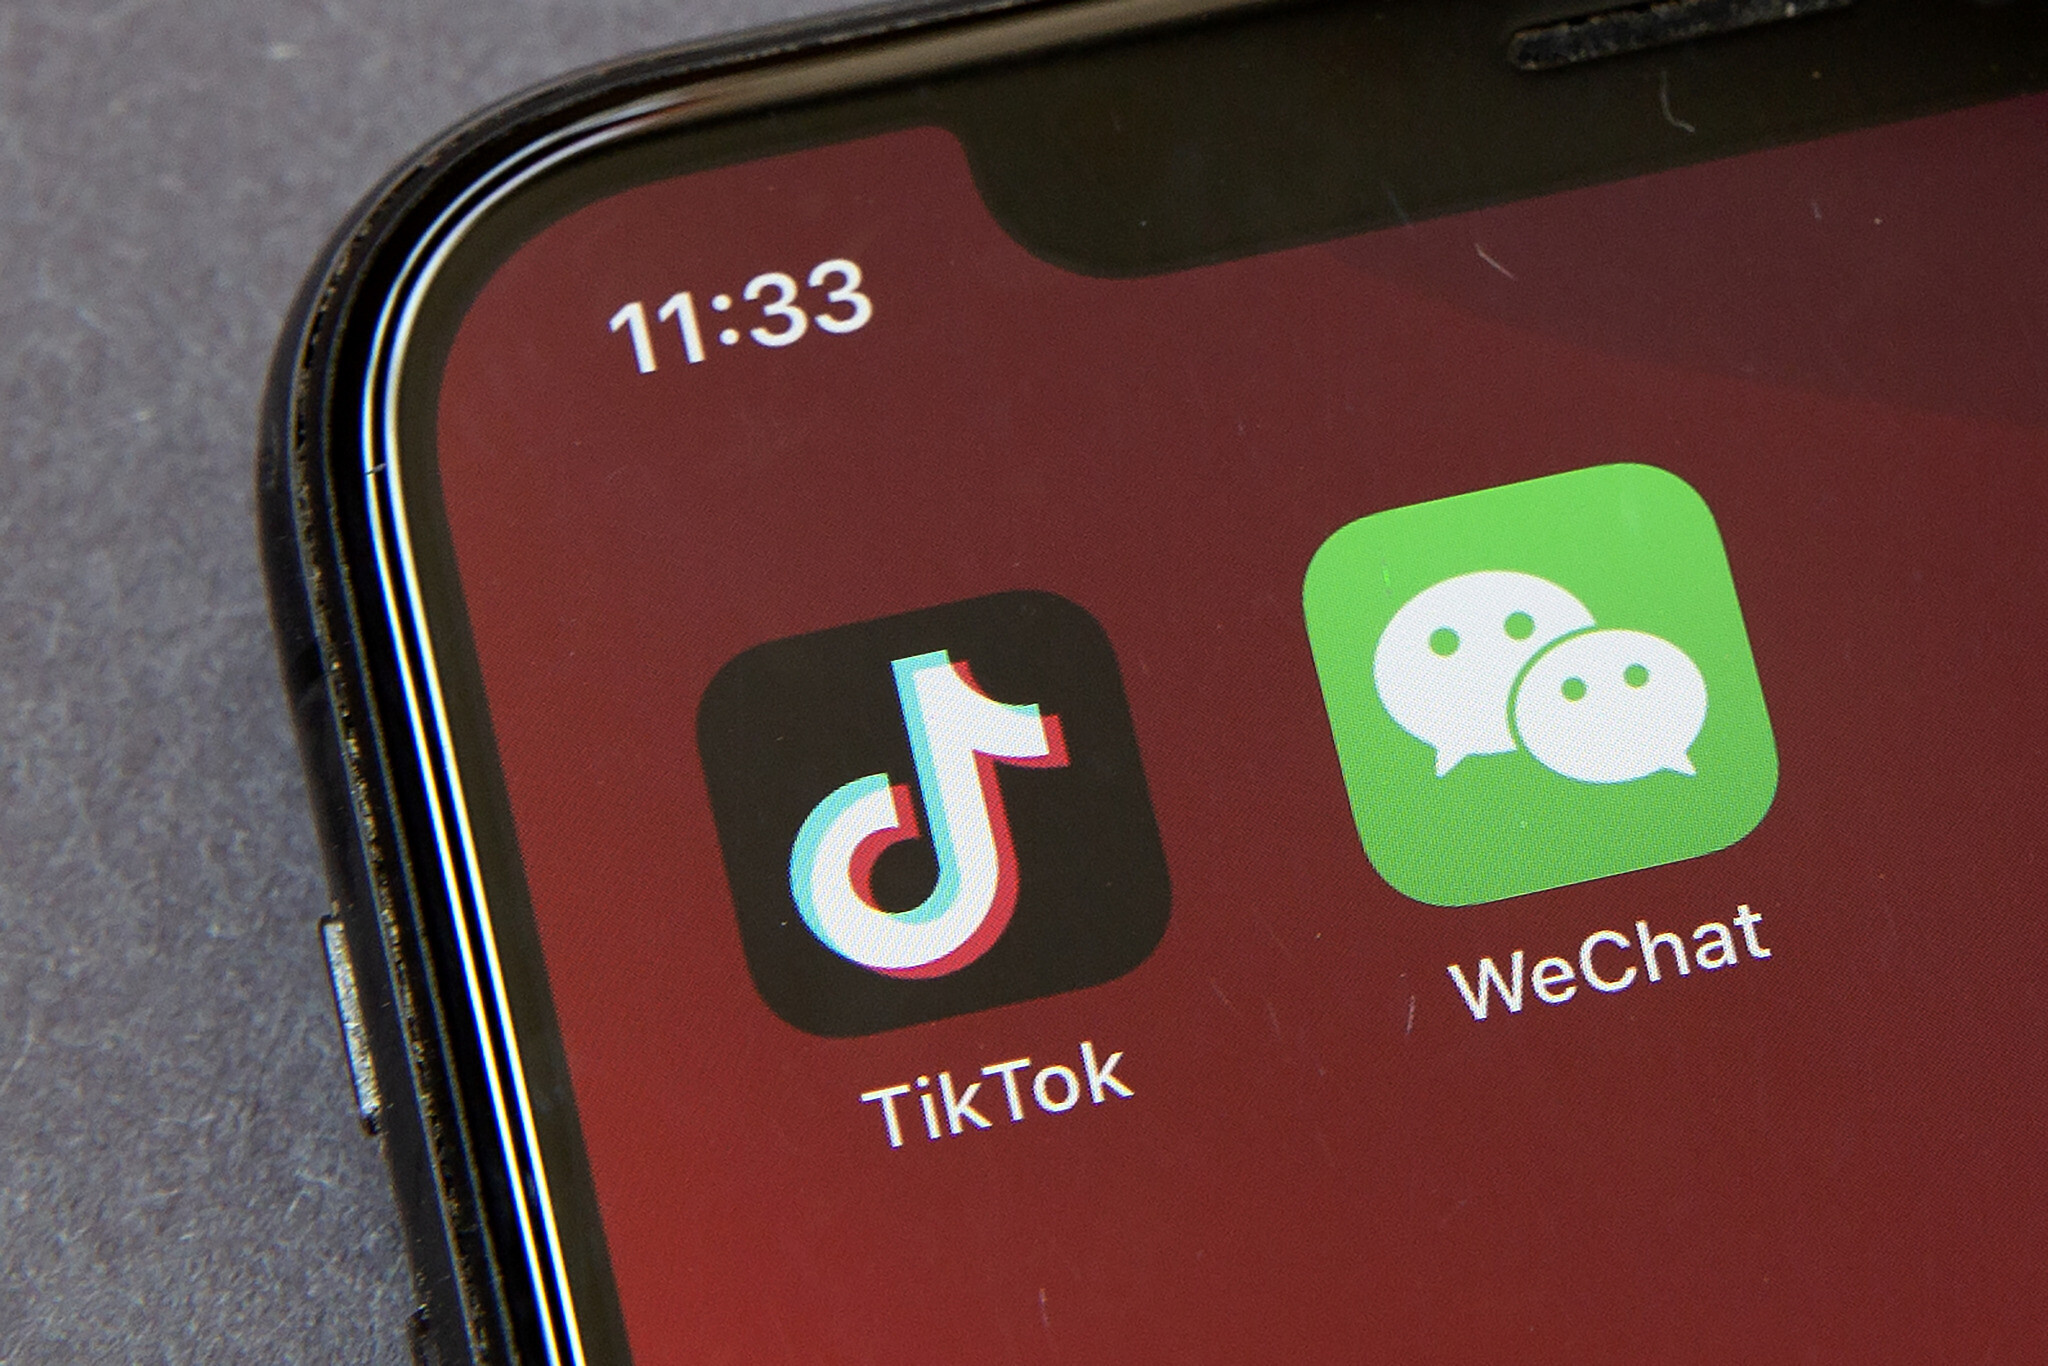 Icons for the smartphone apps TikTok and WeChat are seen on a smartphone screen in Beijing.